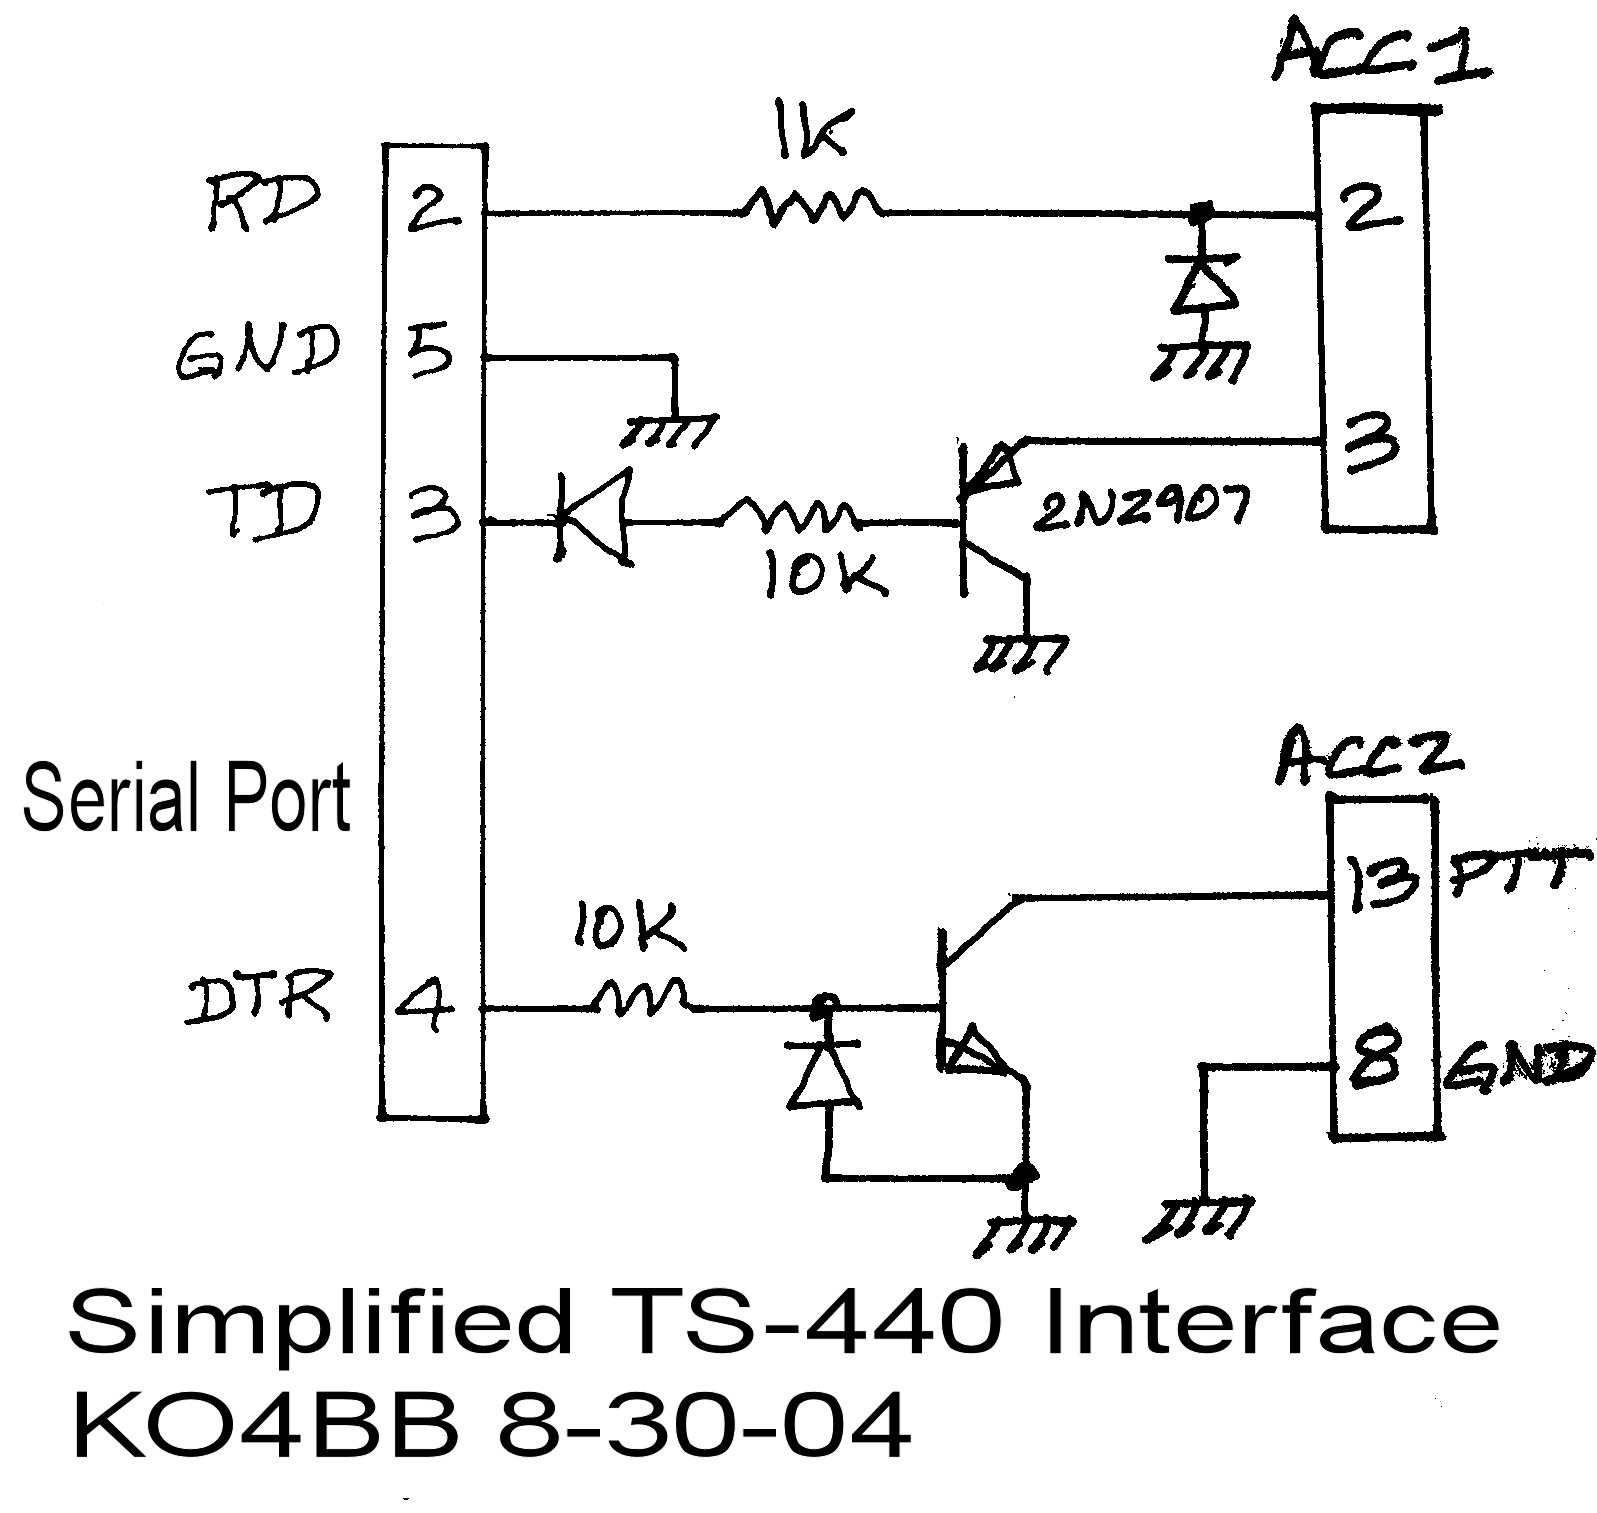 Ko4bb S Ts 440 Interface